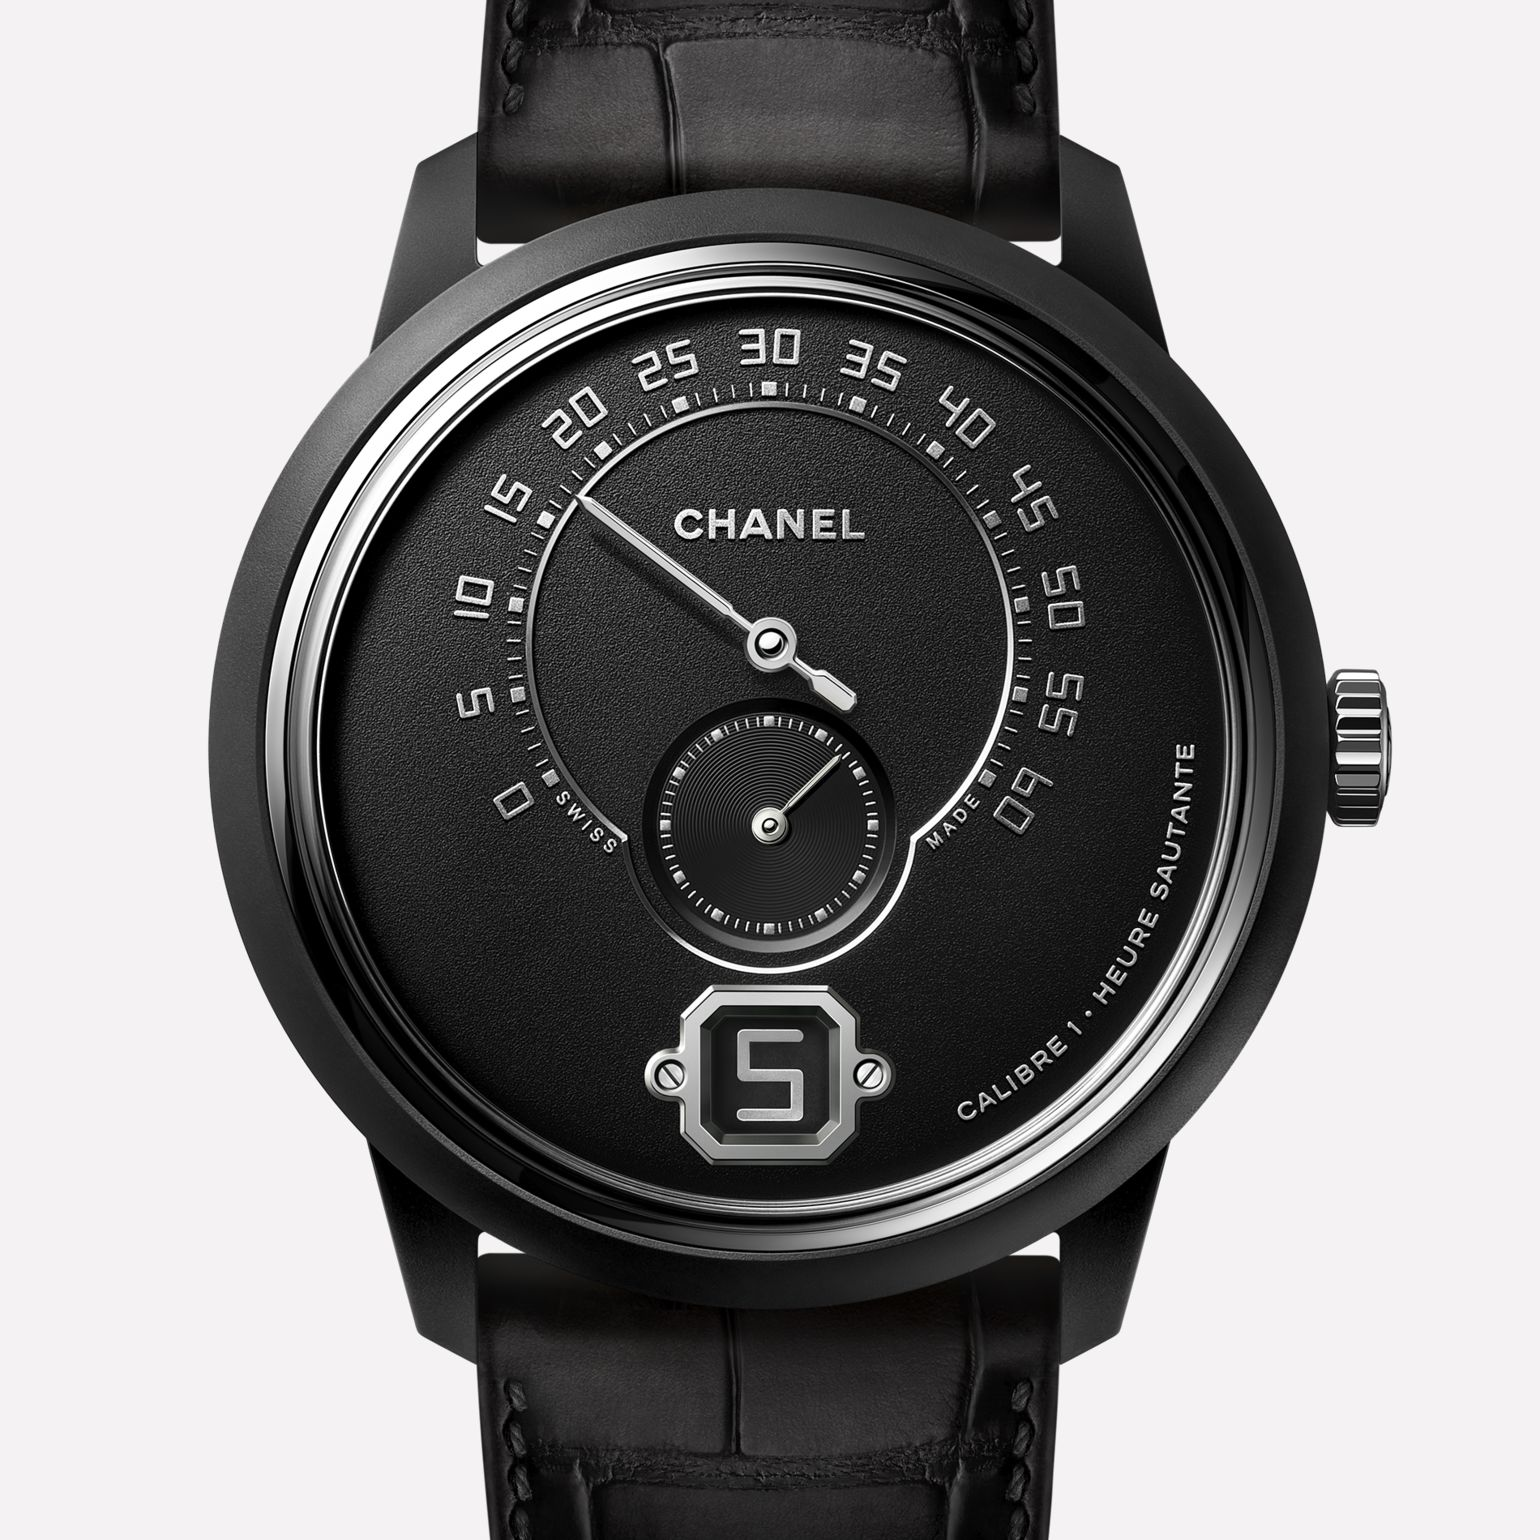 Monsieur Watch Matte black highly resistant ceramic and steel, matte black dial with jumping hour, 240° retrograde minute and small second counter